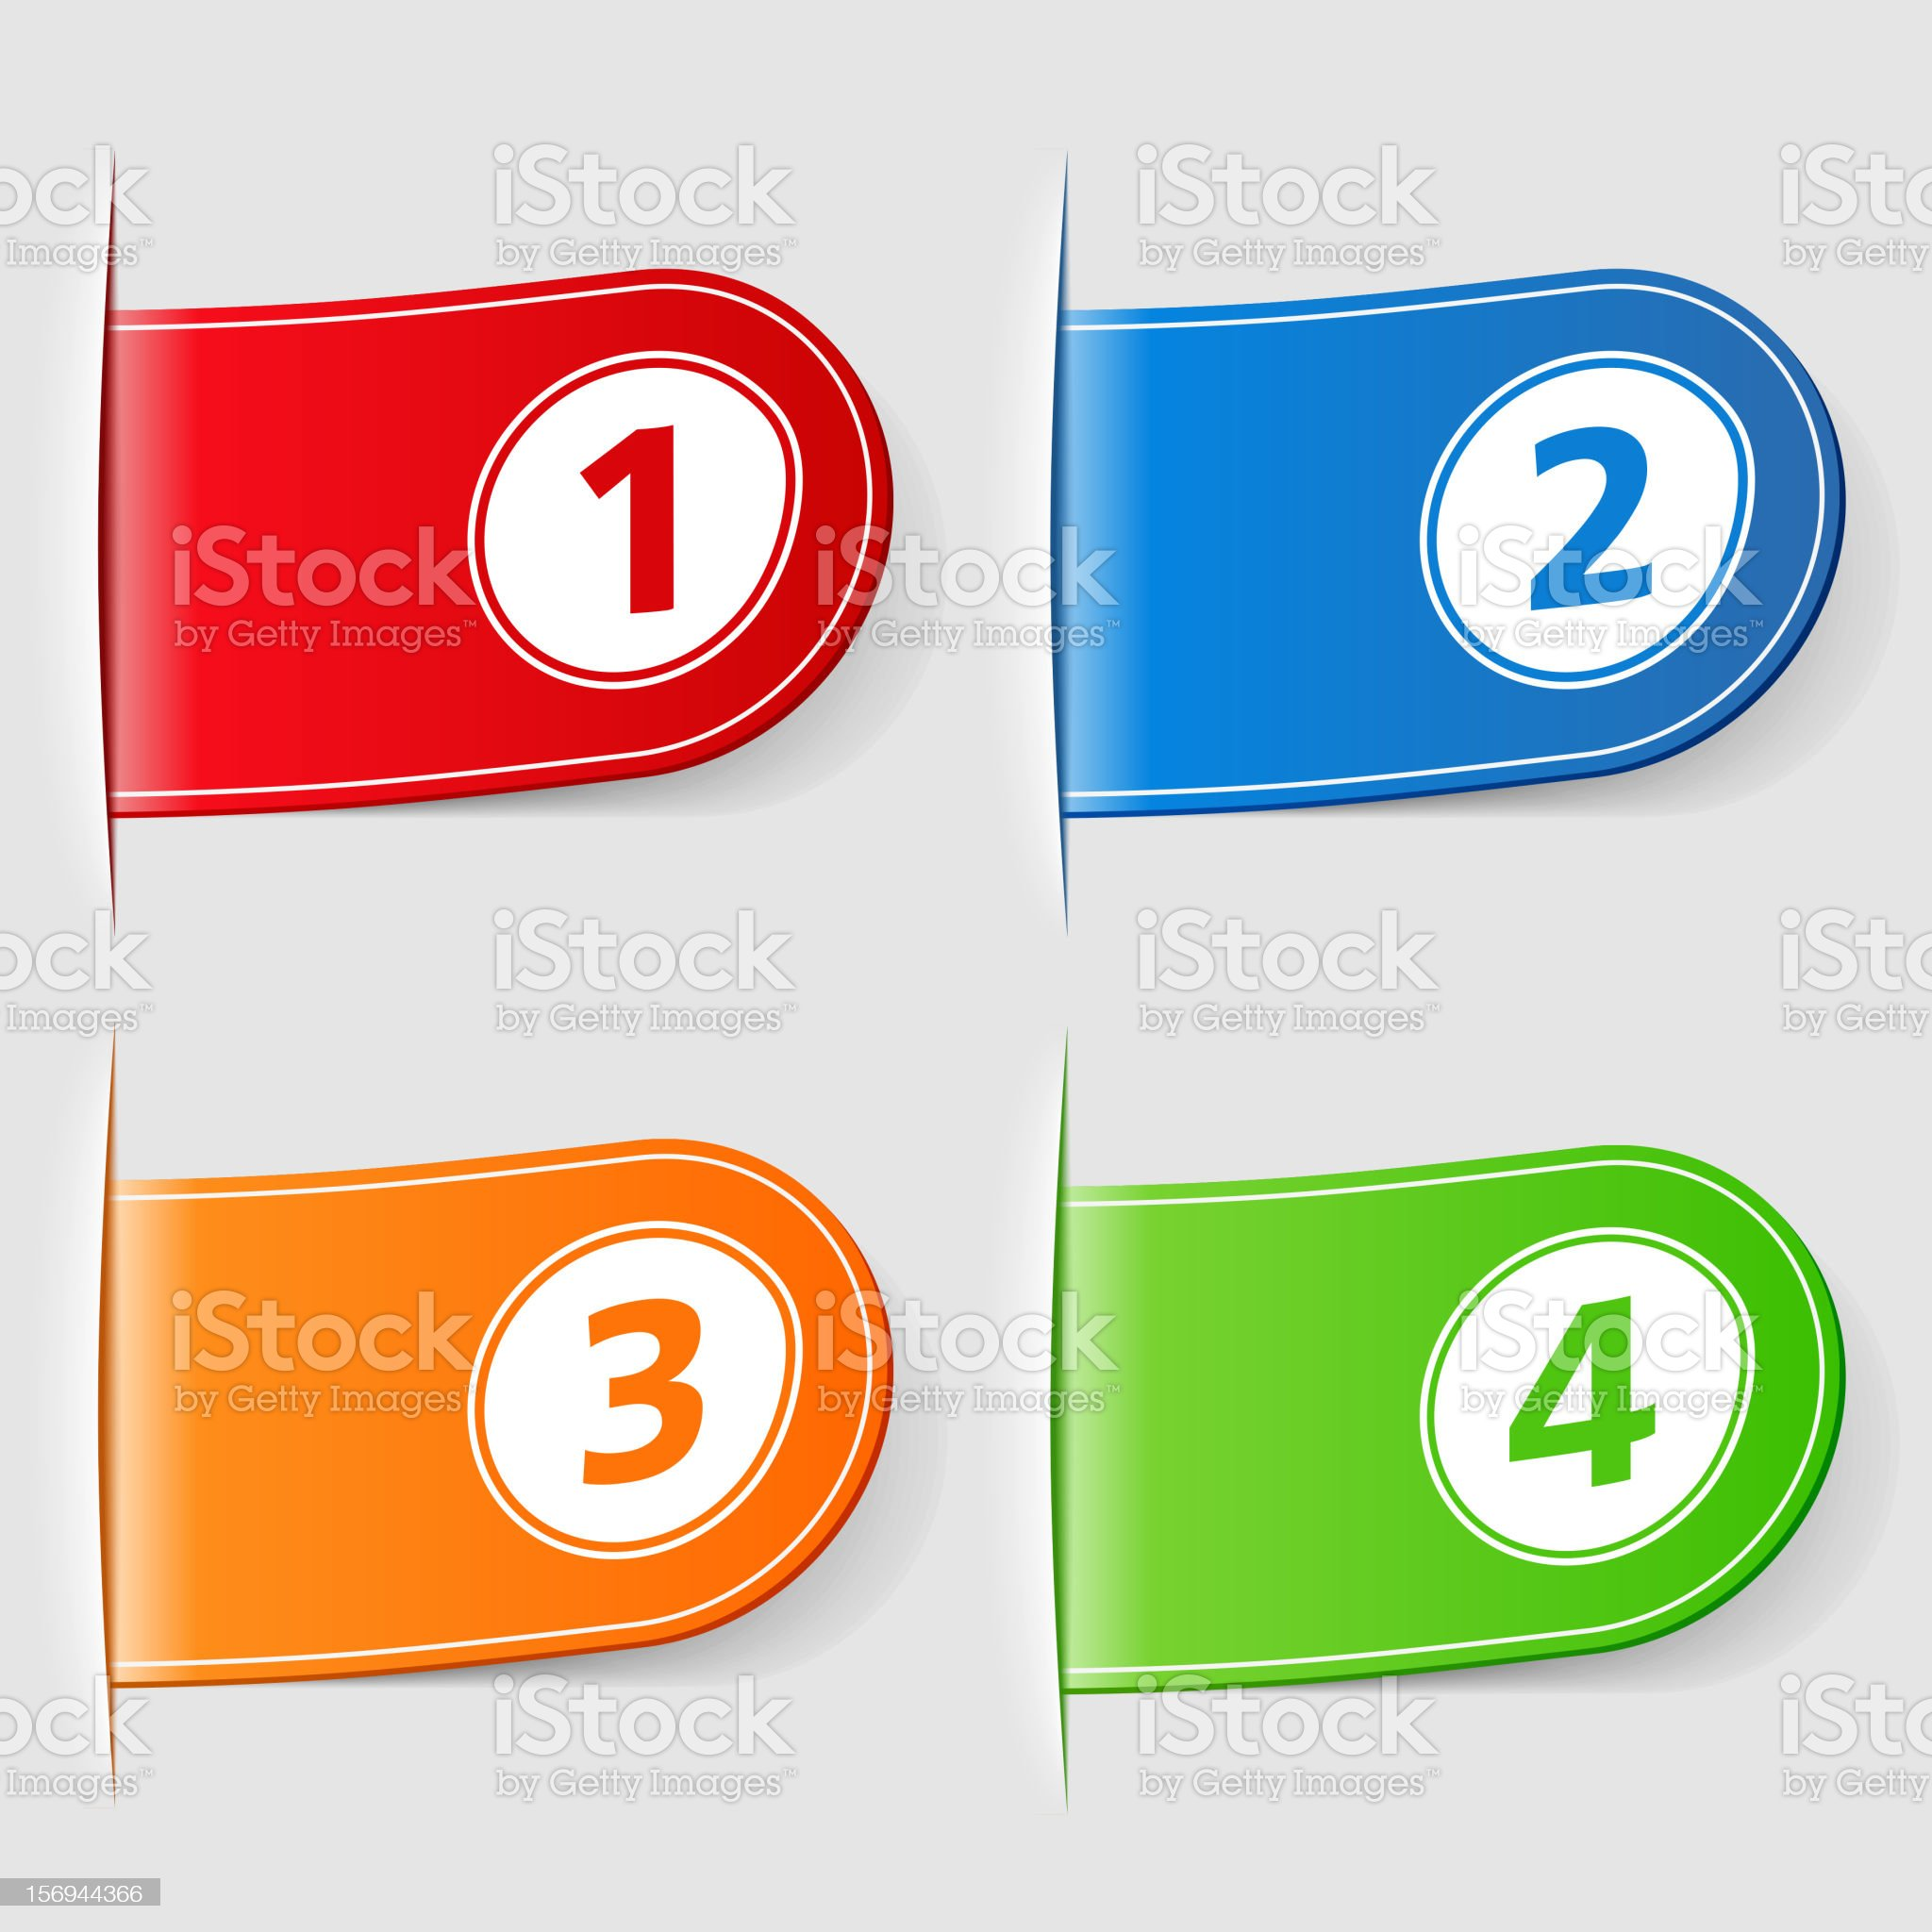 Tabs with numbers royalty-free stock photo